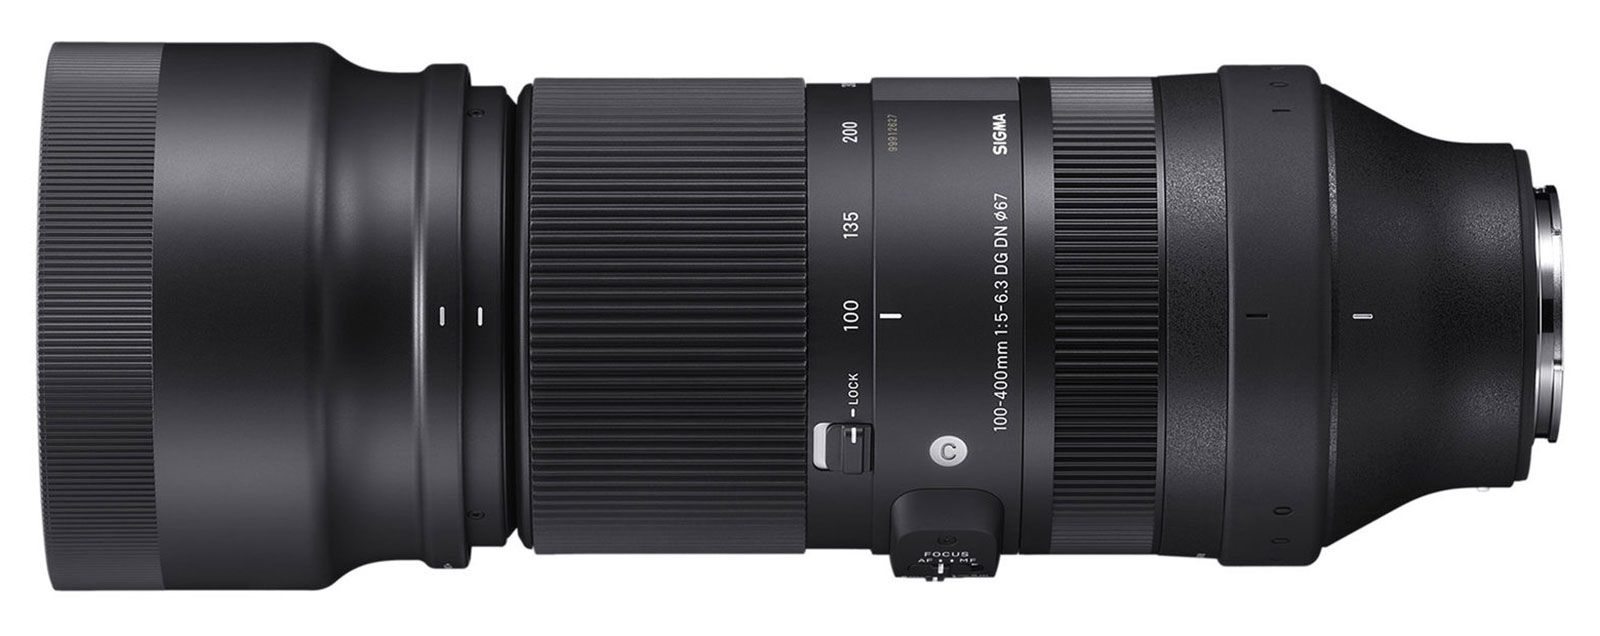 Sigma 100-400mm f/5-6.3 DG DN OS Contemporary FE Lens